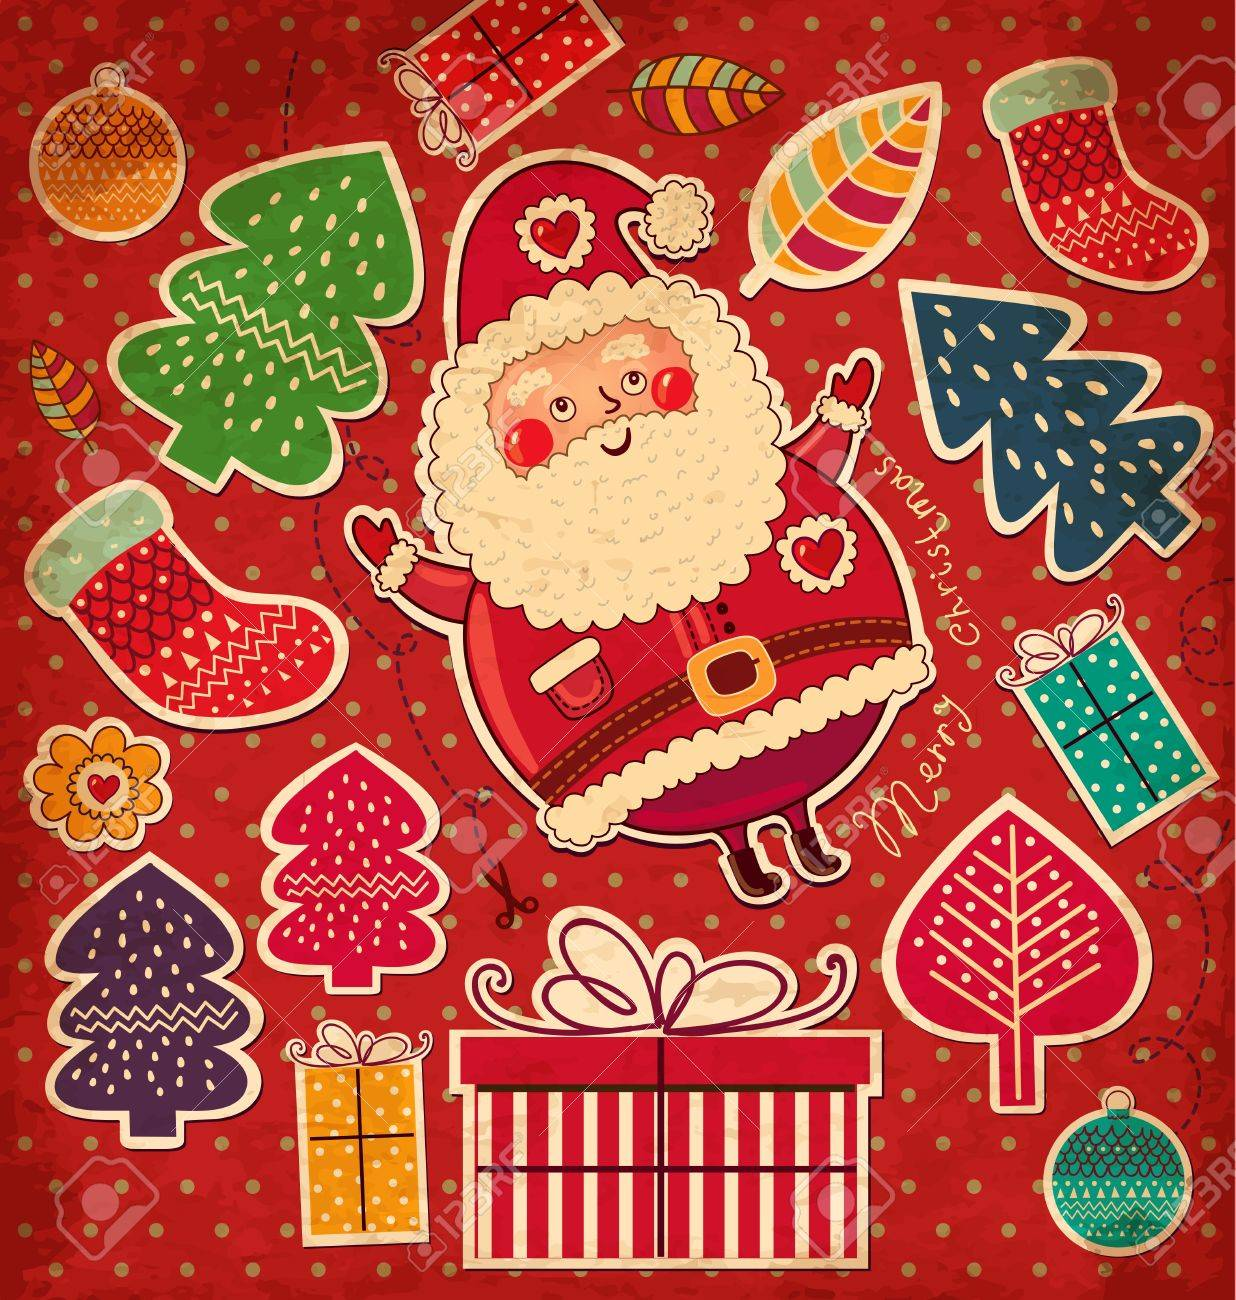 Vintage vector Christmas card with Santa Claus Stock Vector - 15380656